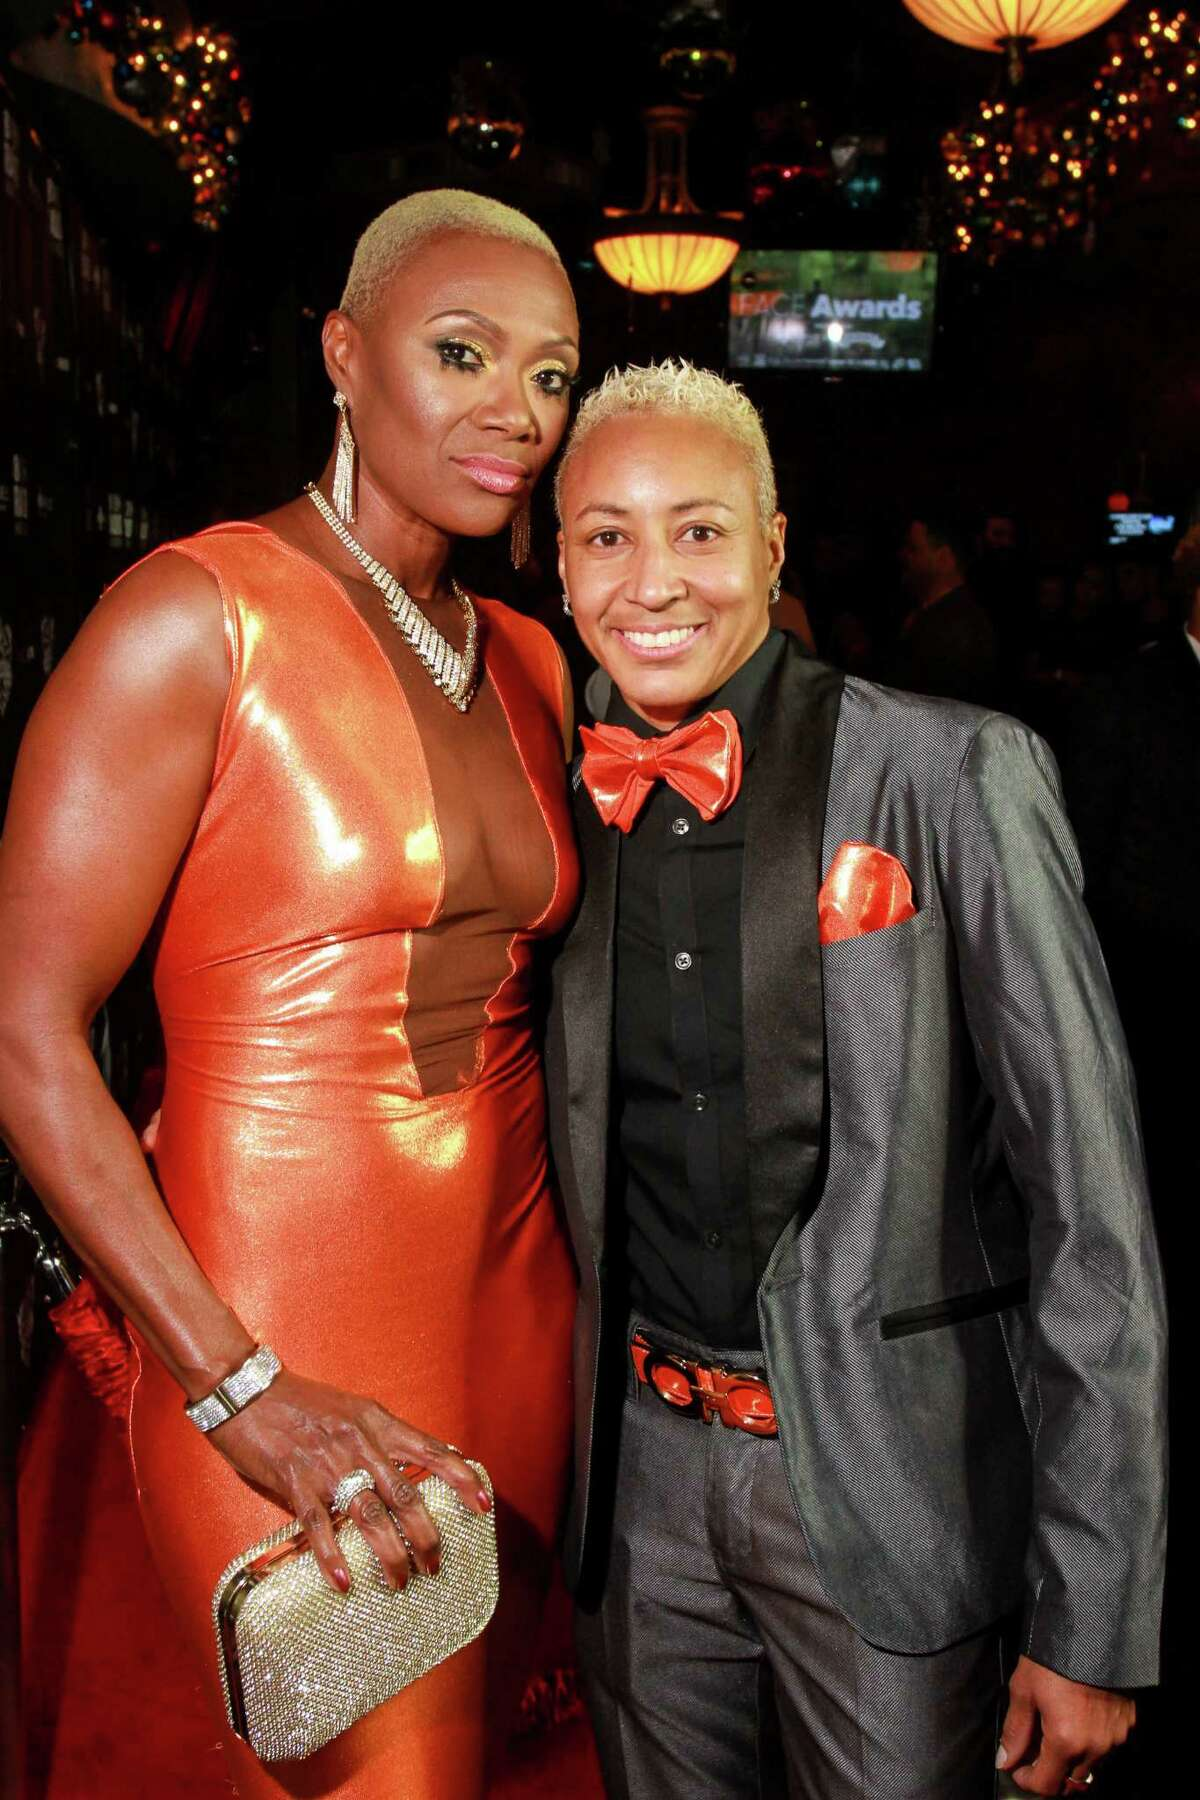 """Jolanda Jones, left, and Cherrise Traylor, of WEtv's """" Sisters In Law,"""" on the red carpet at the FACE Awards, honoring the LGBT community. (For the Chronicle/Gary Fountain, December 12, 2016)"""